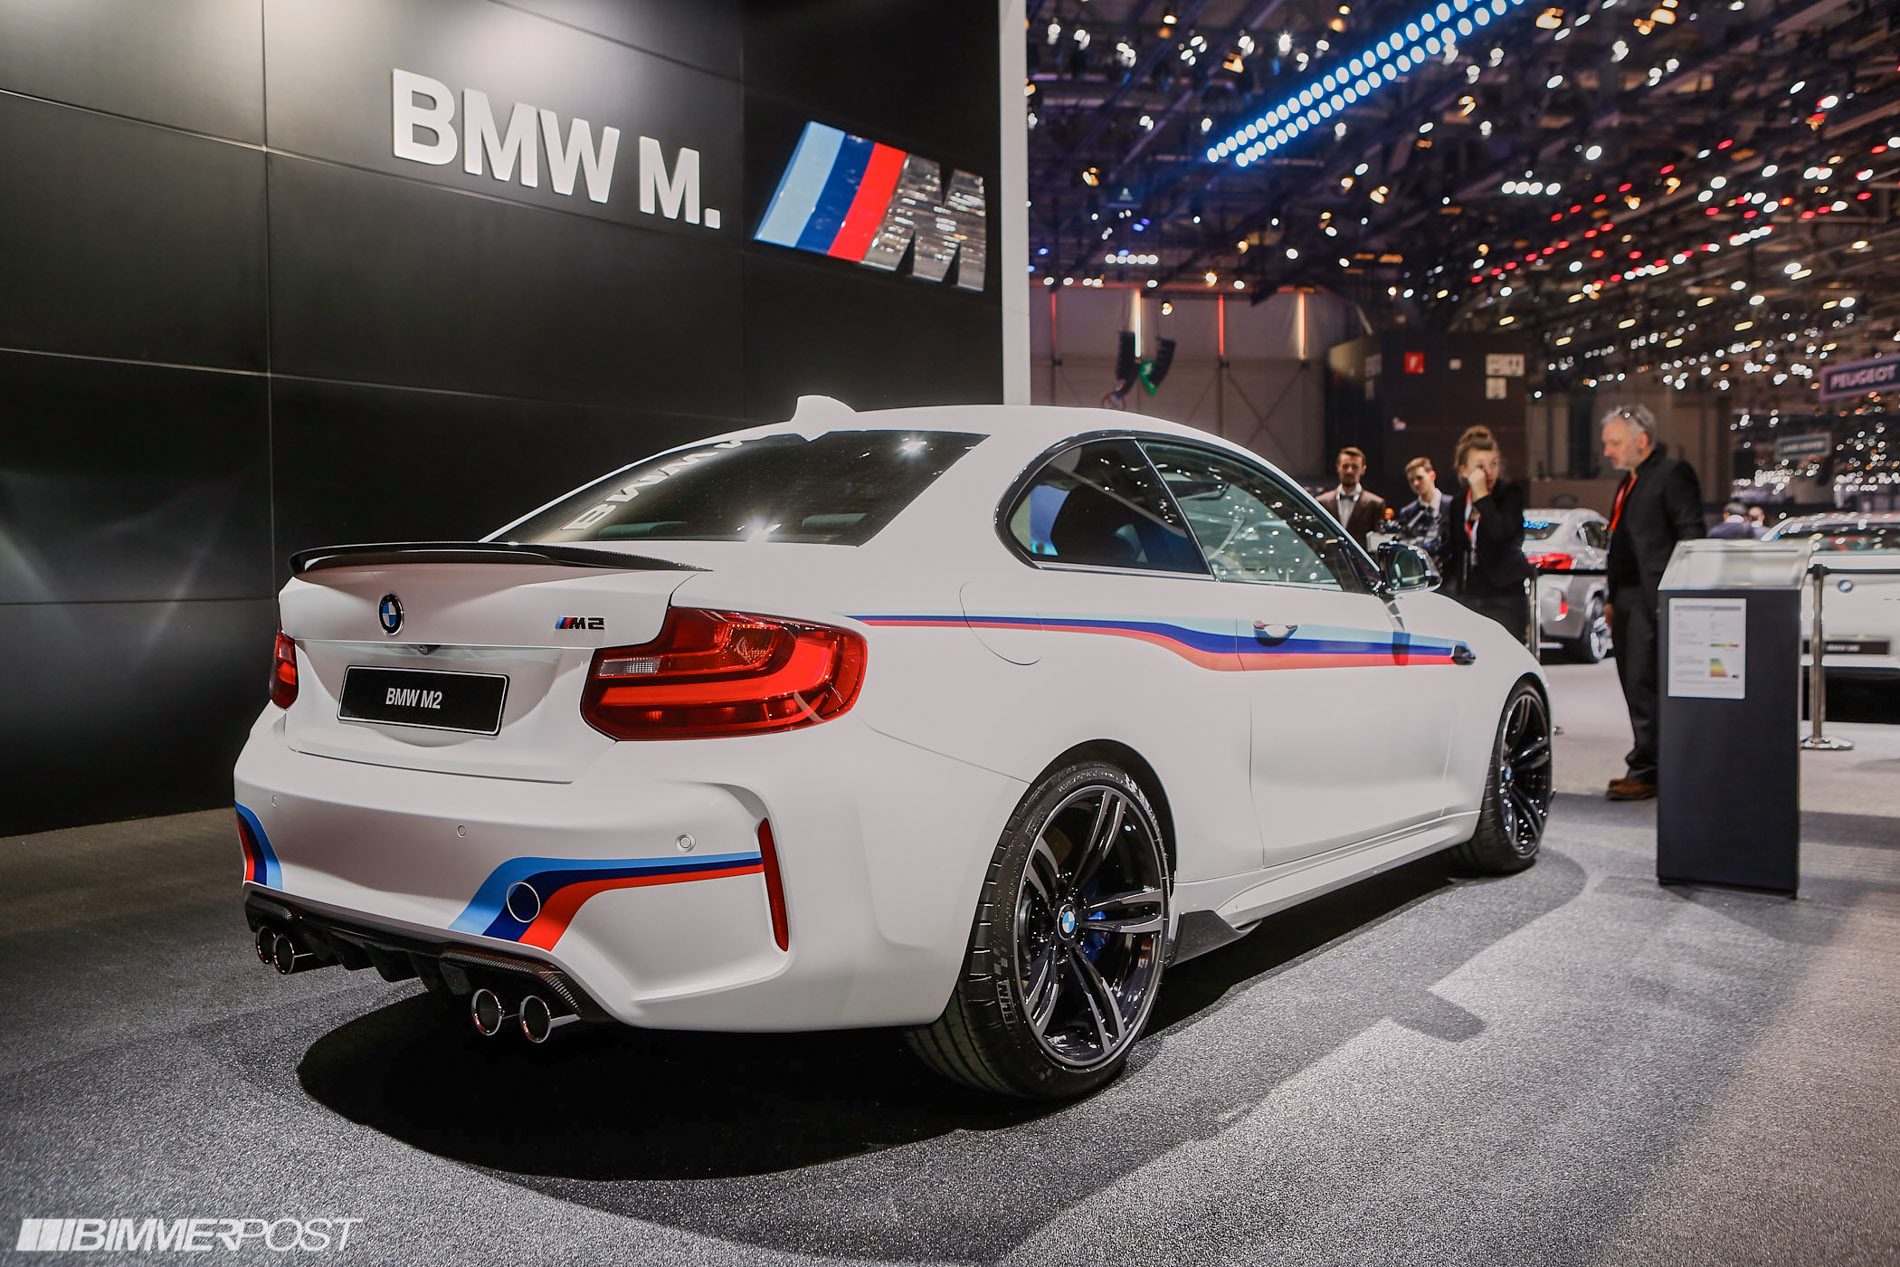 geneva 2016 bmw m2 and m2 m performance parts. Black Bedroom Furniture Sets. Home Design Ideas